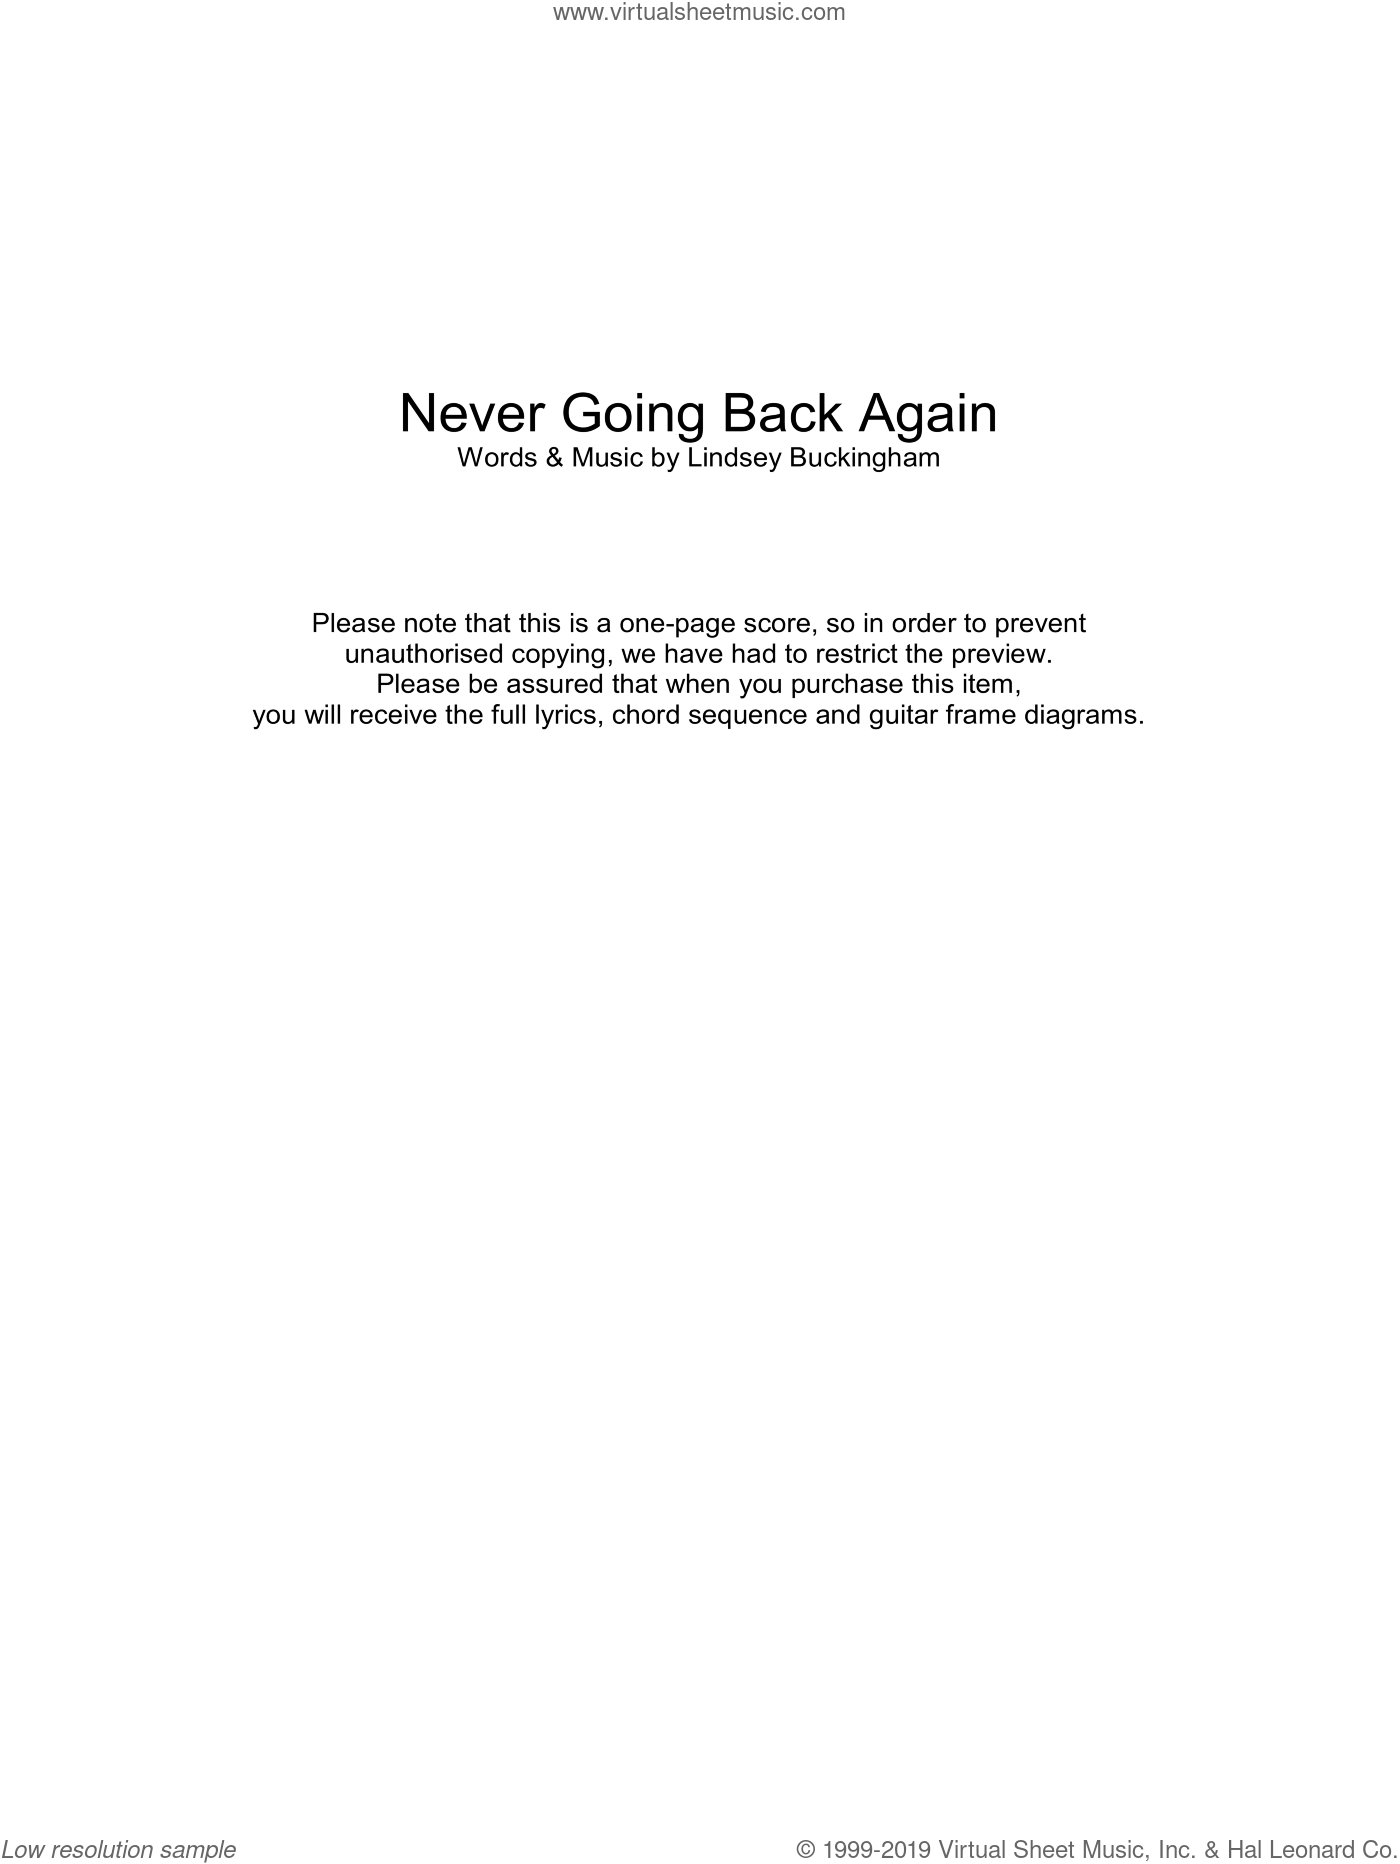 Never Going Back Again sheet music for guitar (chords) by Lindsey Buckingham